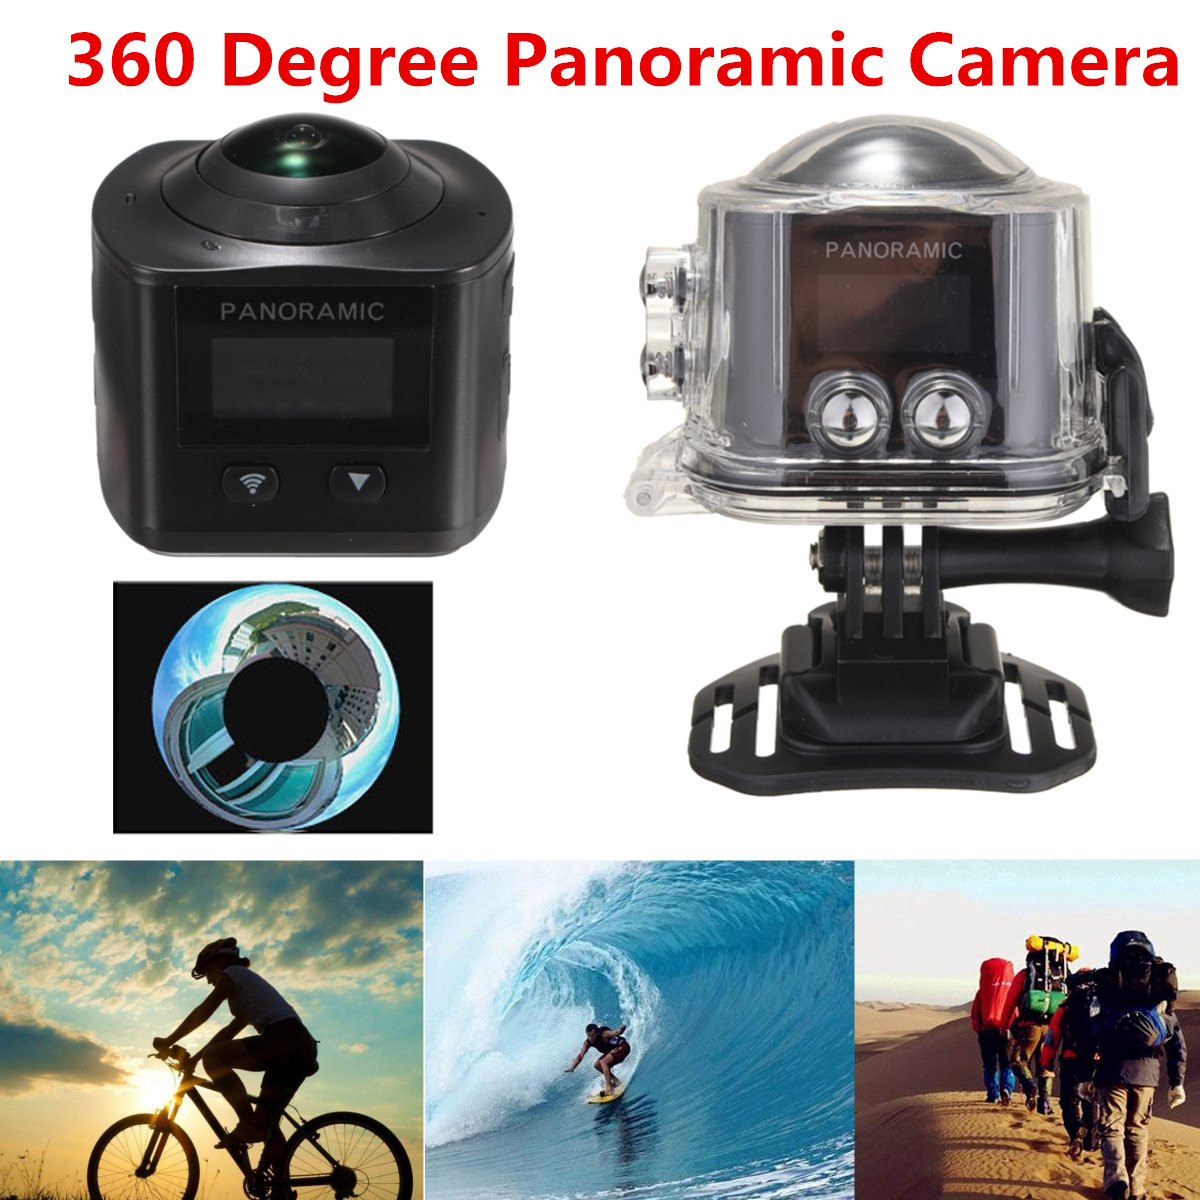 360 Degree Panoramic Camera 3D VR WIFI Function HD Waterproof Action Sports Cam цена и фото